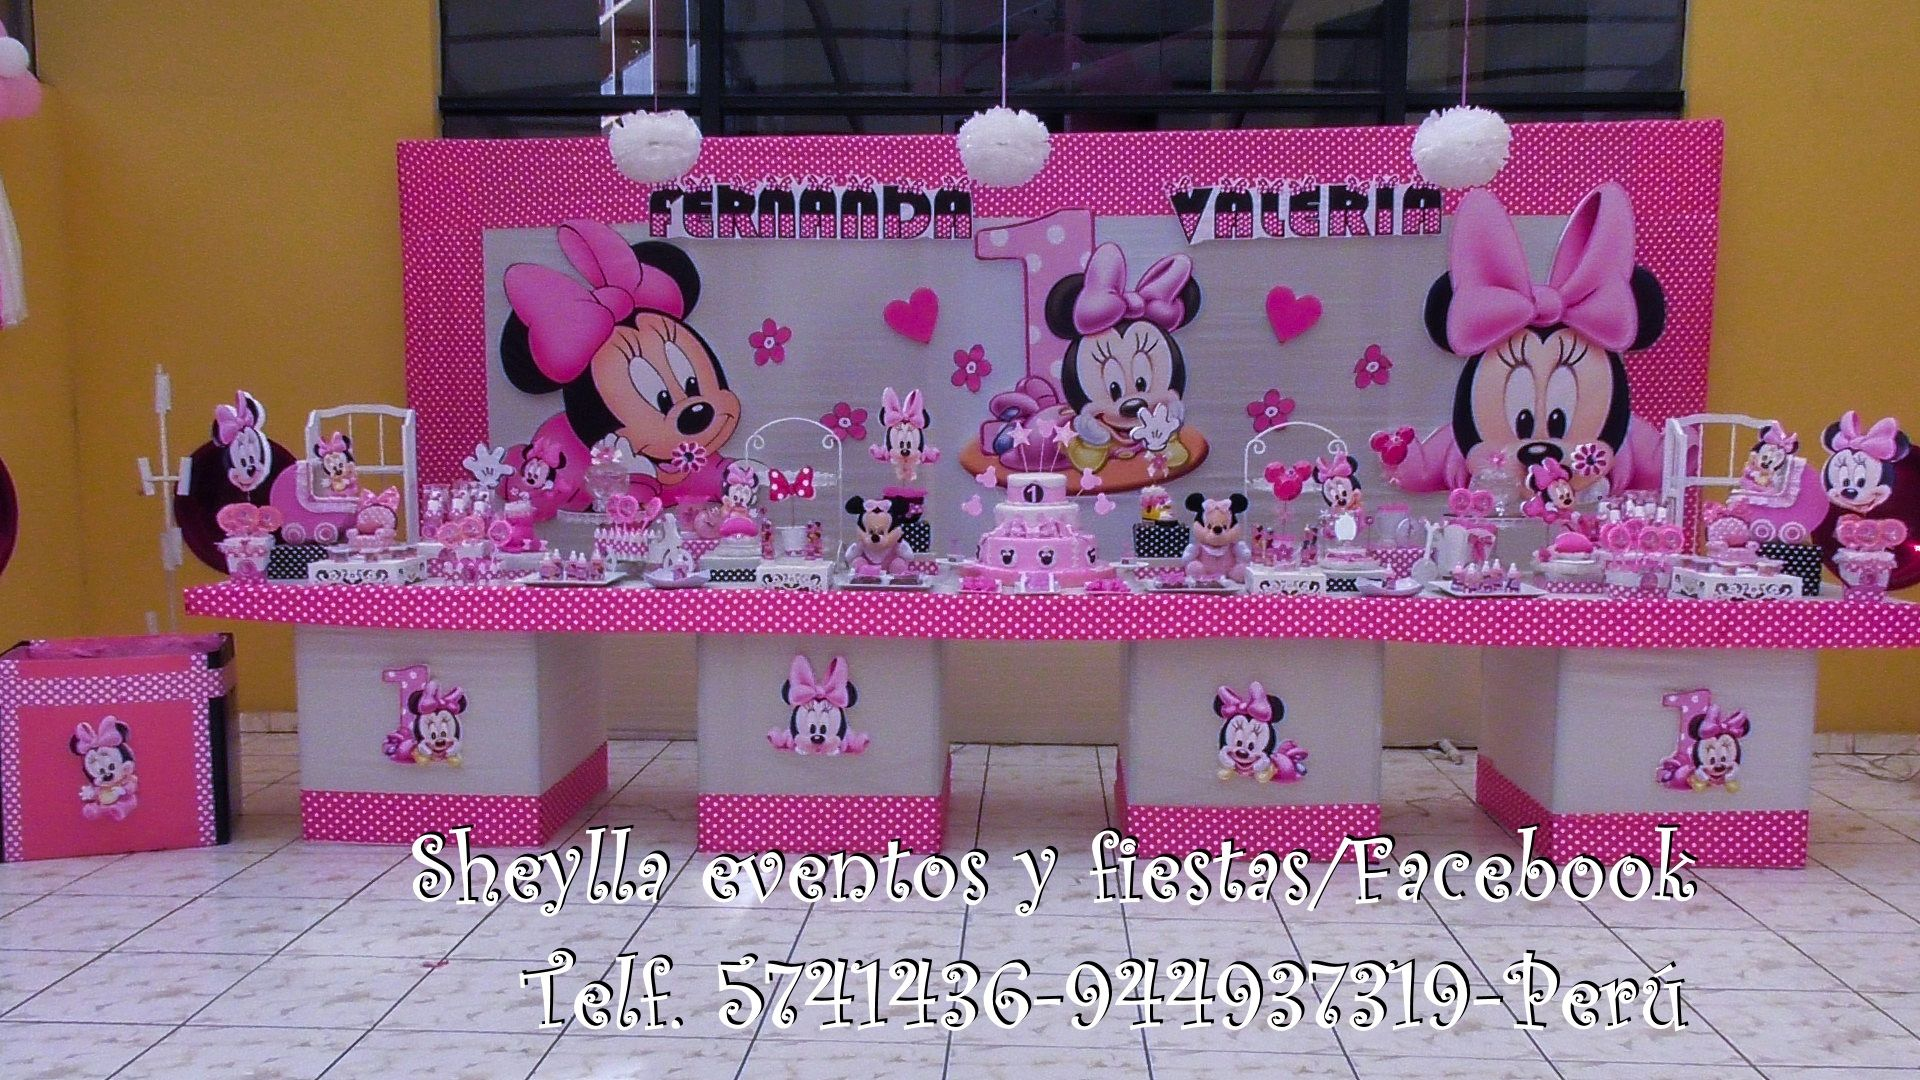 Decoraci n minnie bebe minnie coqueta bebe fiesta for Decoracion cumpleanos nino